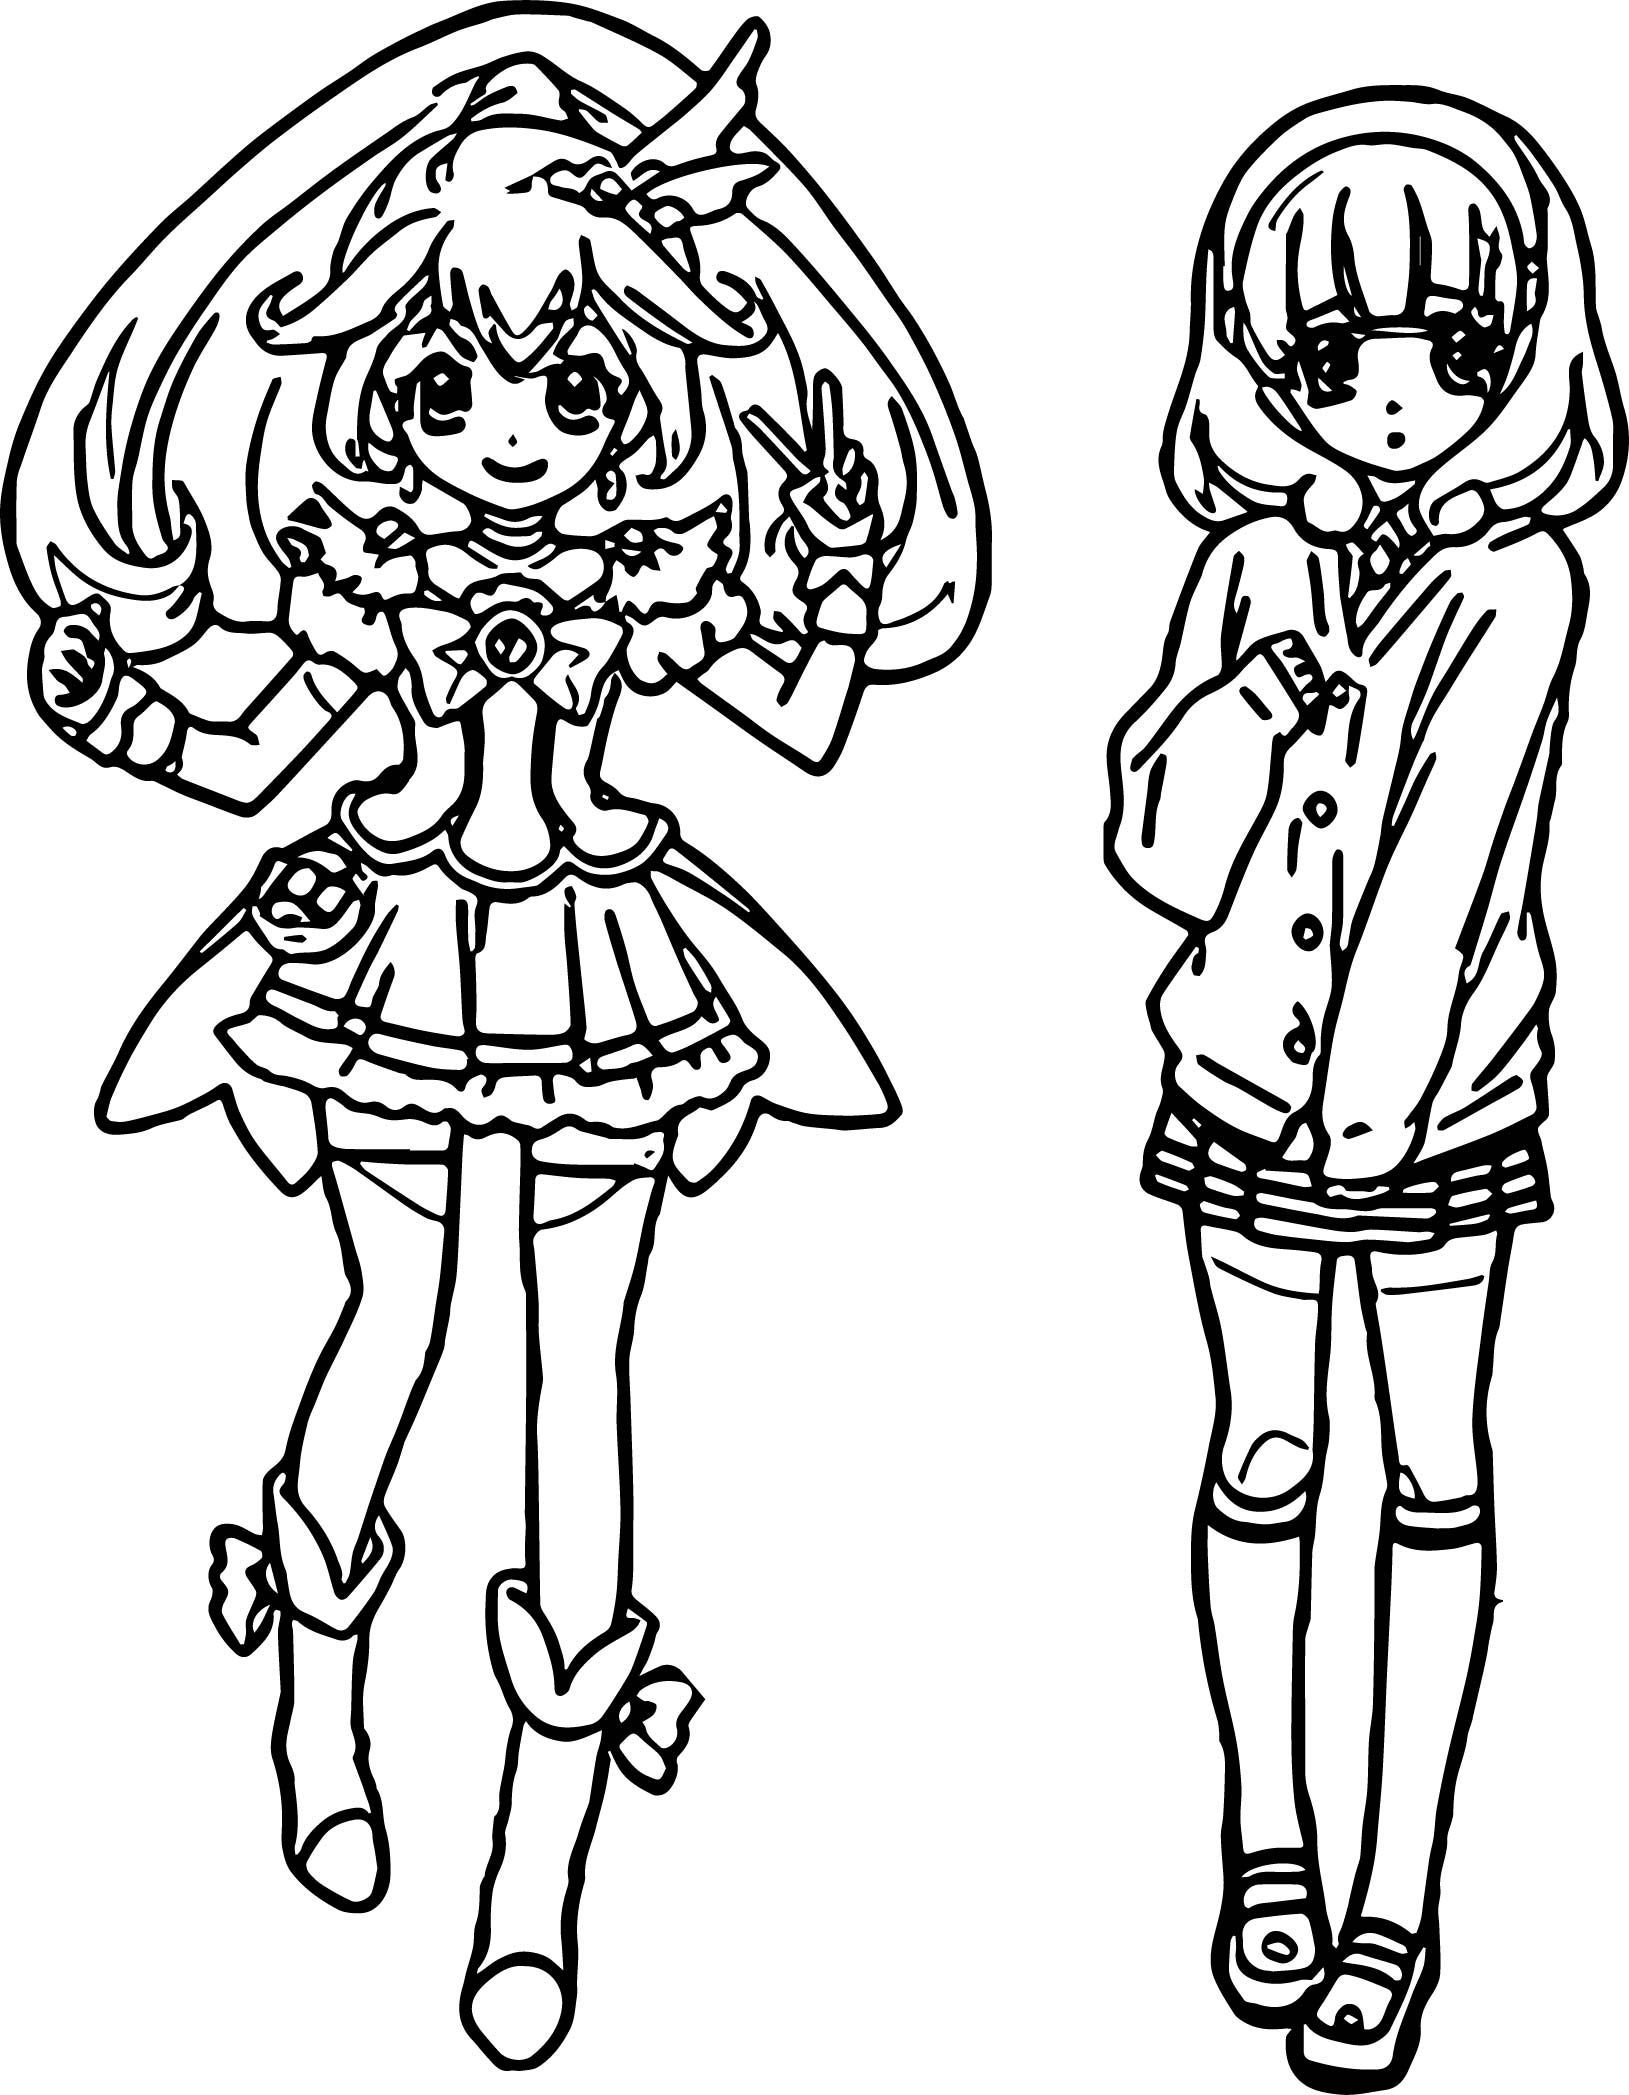 Nice Glitter Force Two Girl Coloring Page Coloring Pages For Girls Glitter Force Coloring Pages